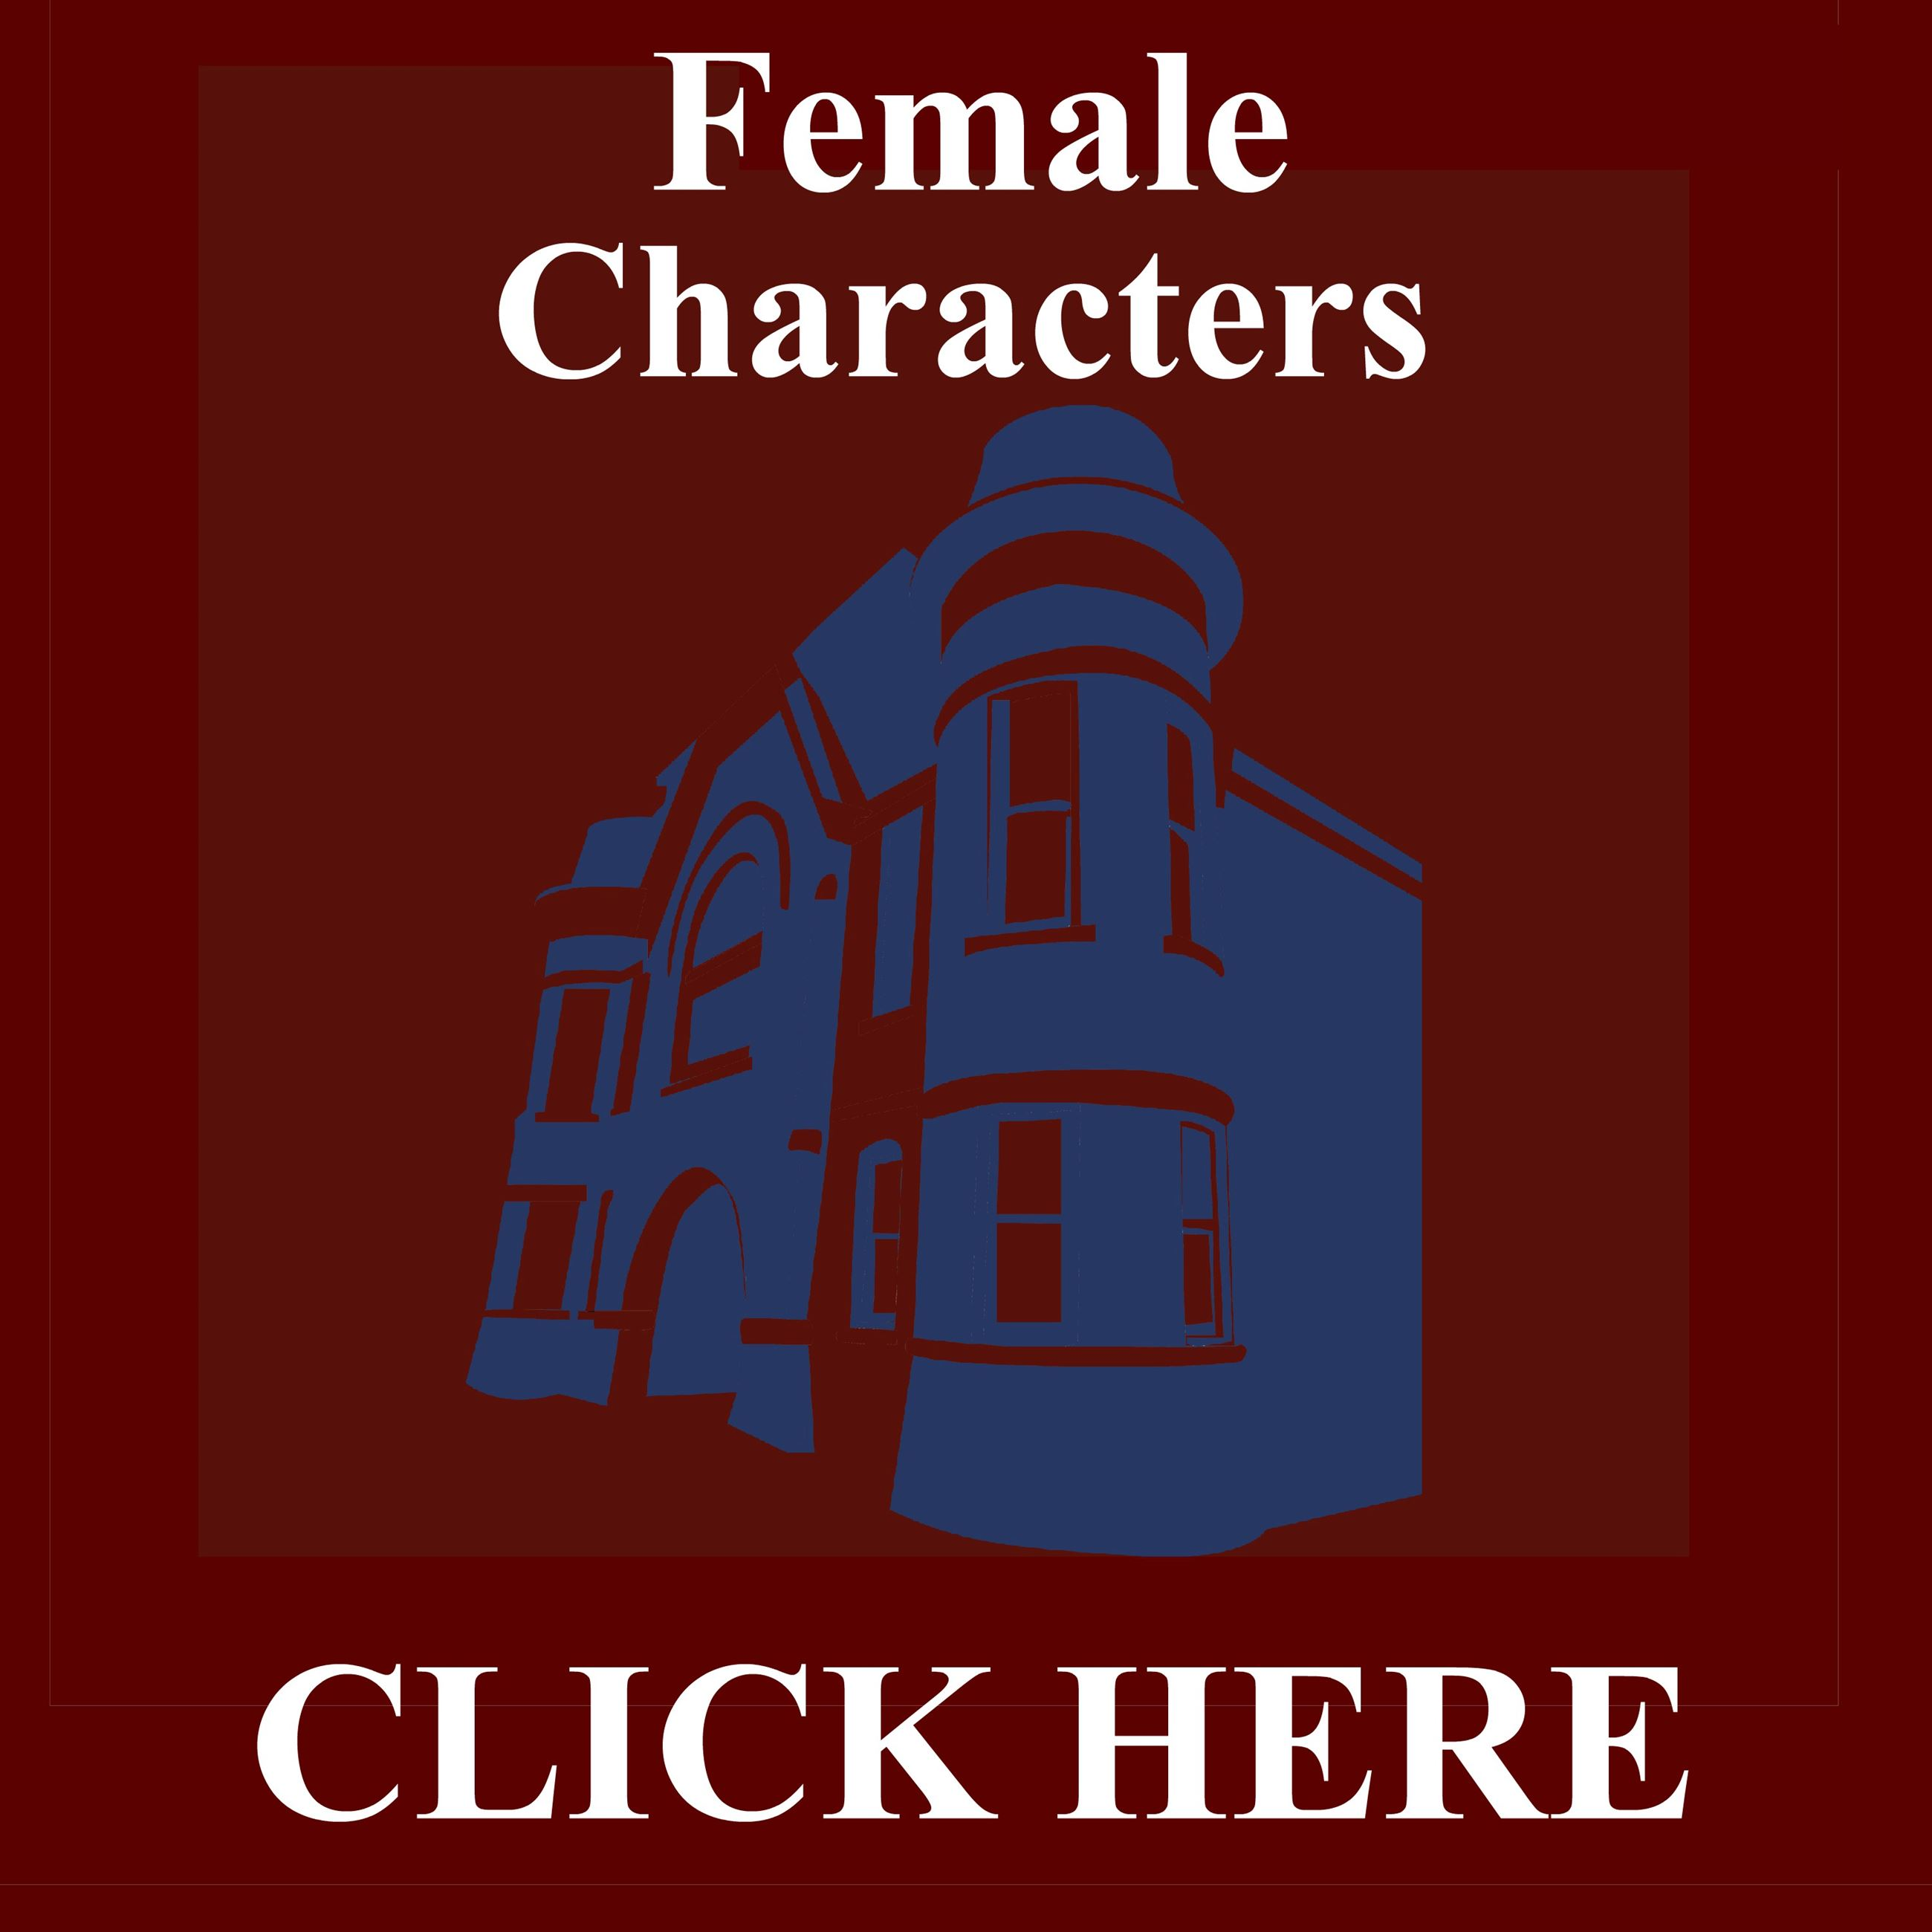 CLICK HERE for more information about FEMALE Characters